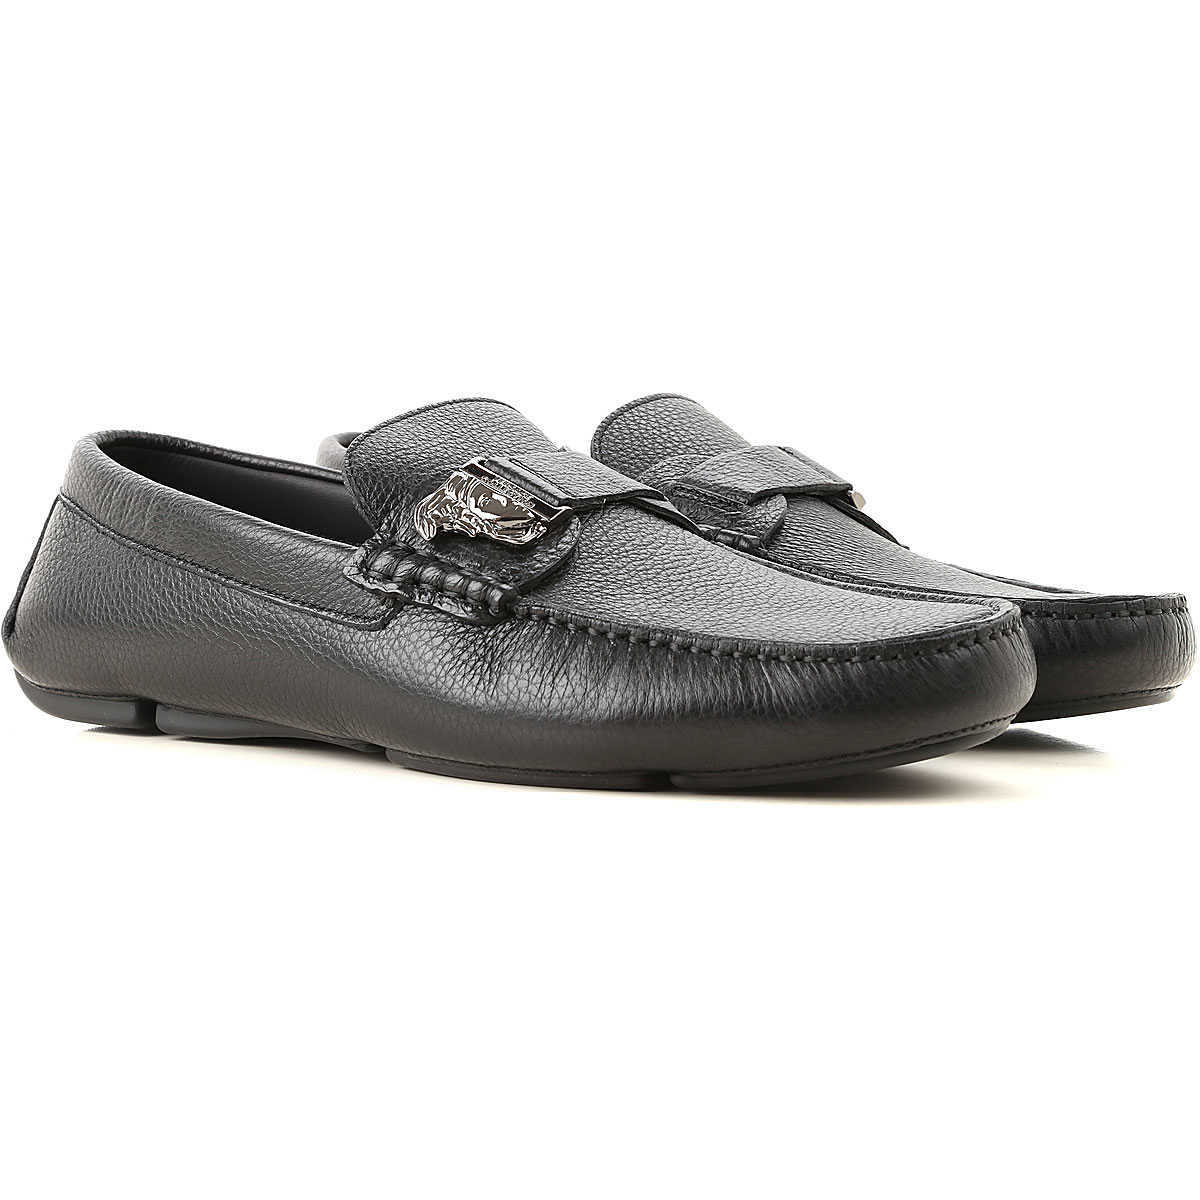 Versace Loafers for Men Black Canada - GOOFASH - Mens LOAFERS